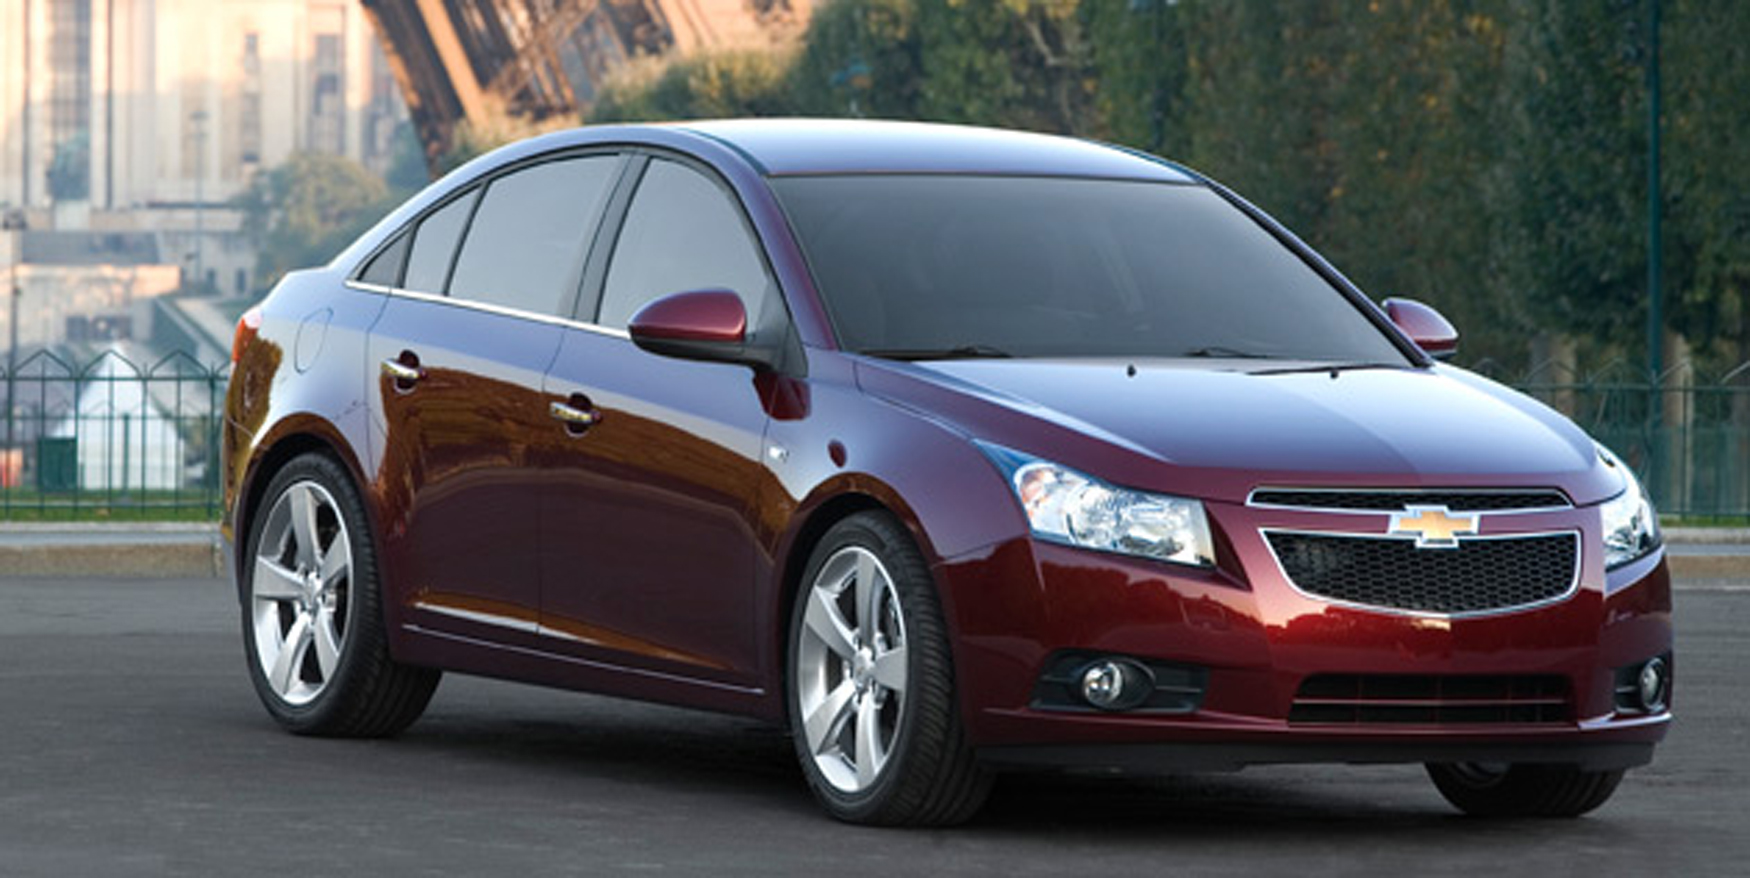 Gm Recalls Chevy Cruze For Steering Shaft Problem The Blade